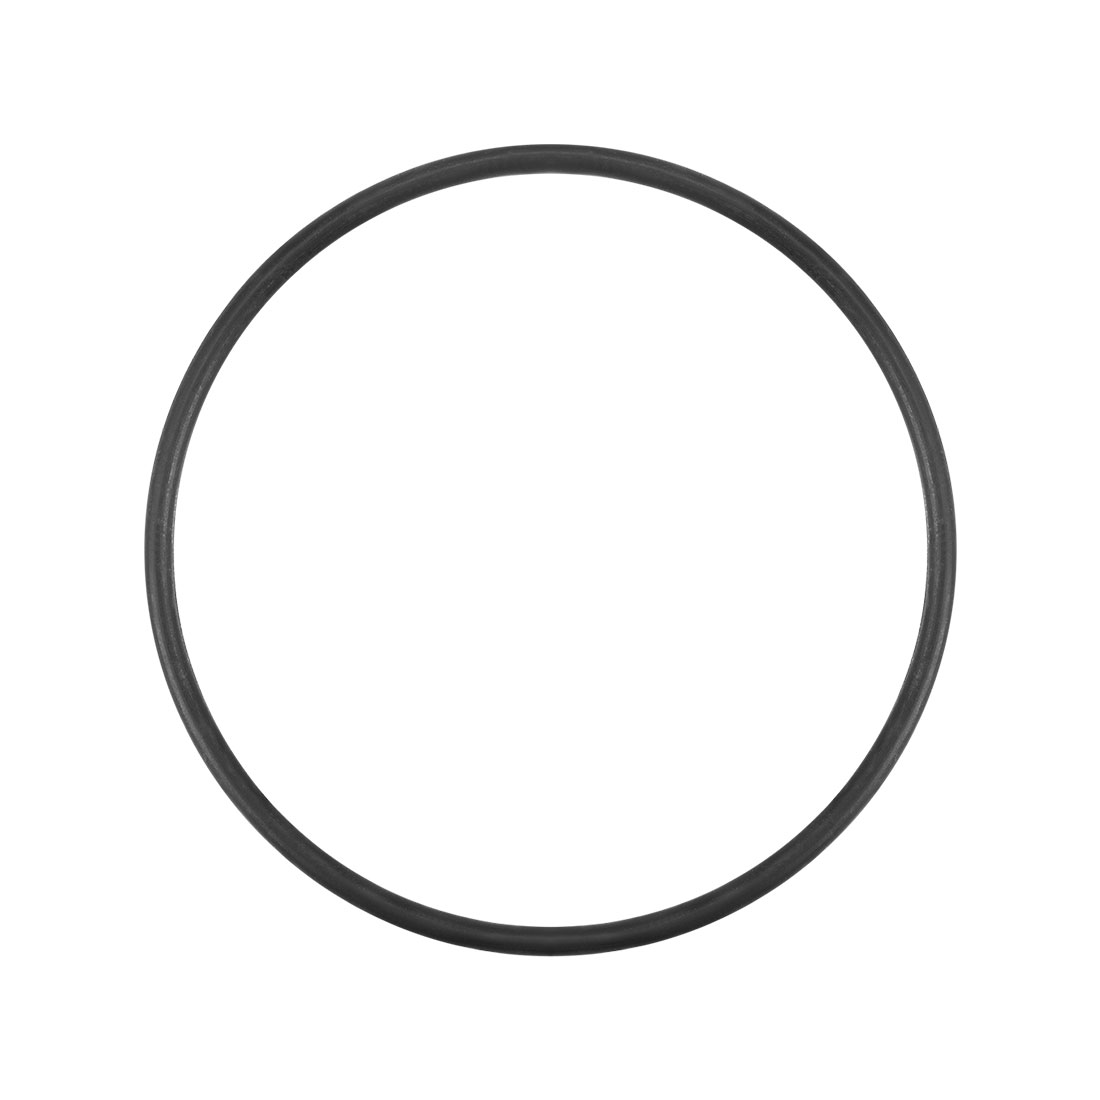 O-Rings Nitrile Rubber 46.2mm x 49.8mm x 1.8mm Round Seal Gasket